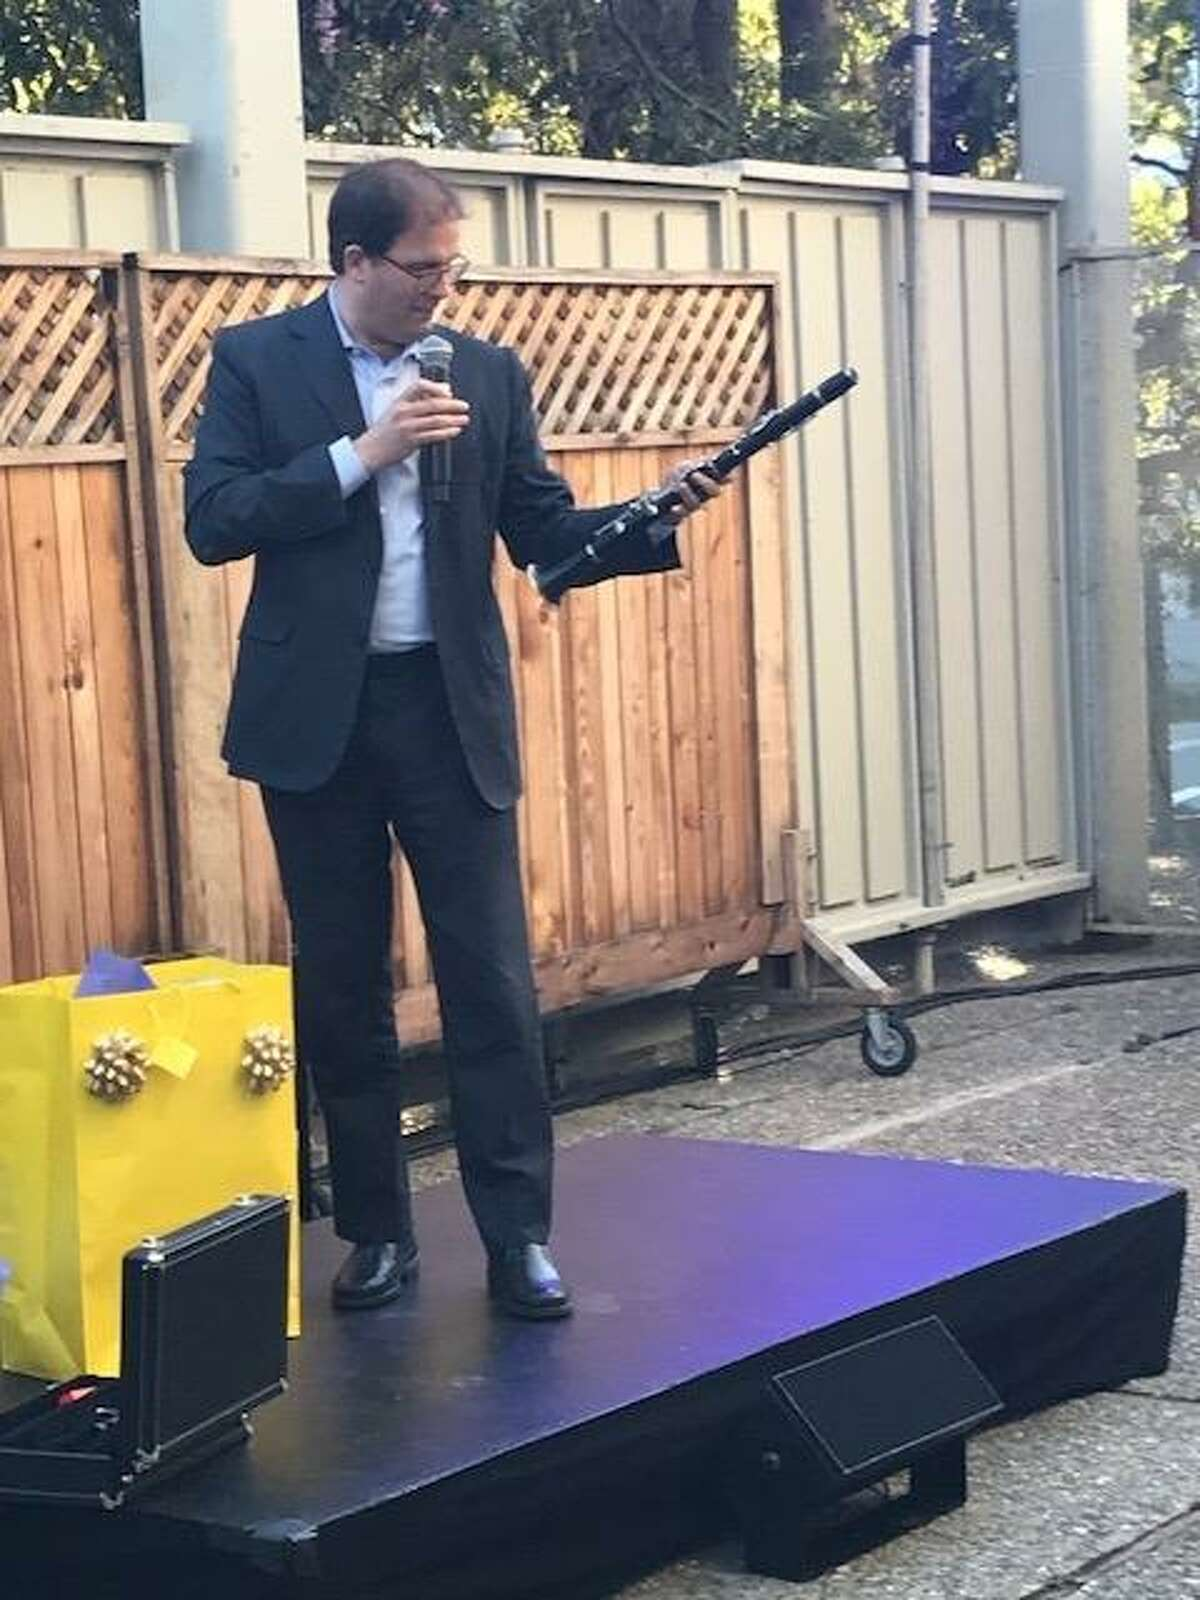 Matias Tarnopolsky accepts good-by gift, a Selmer 1010 clarinet